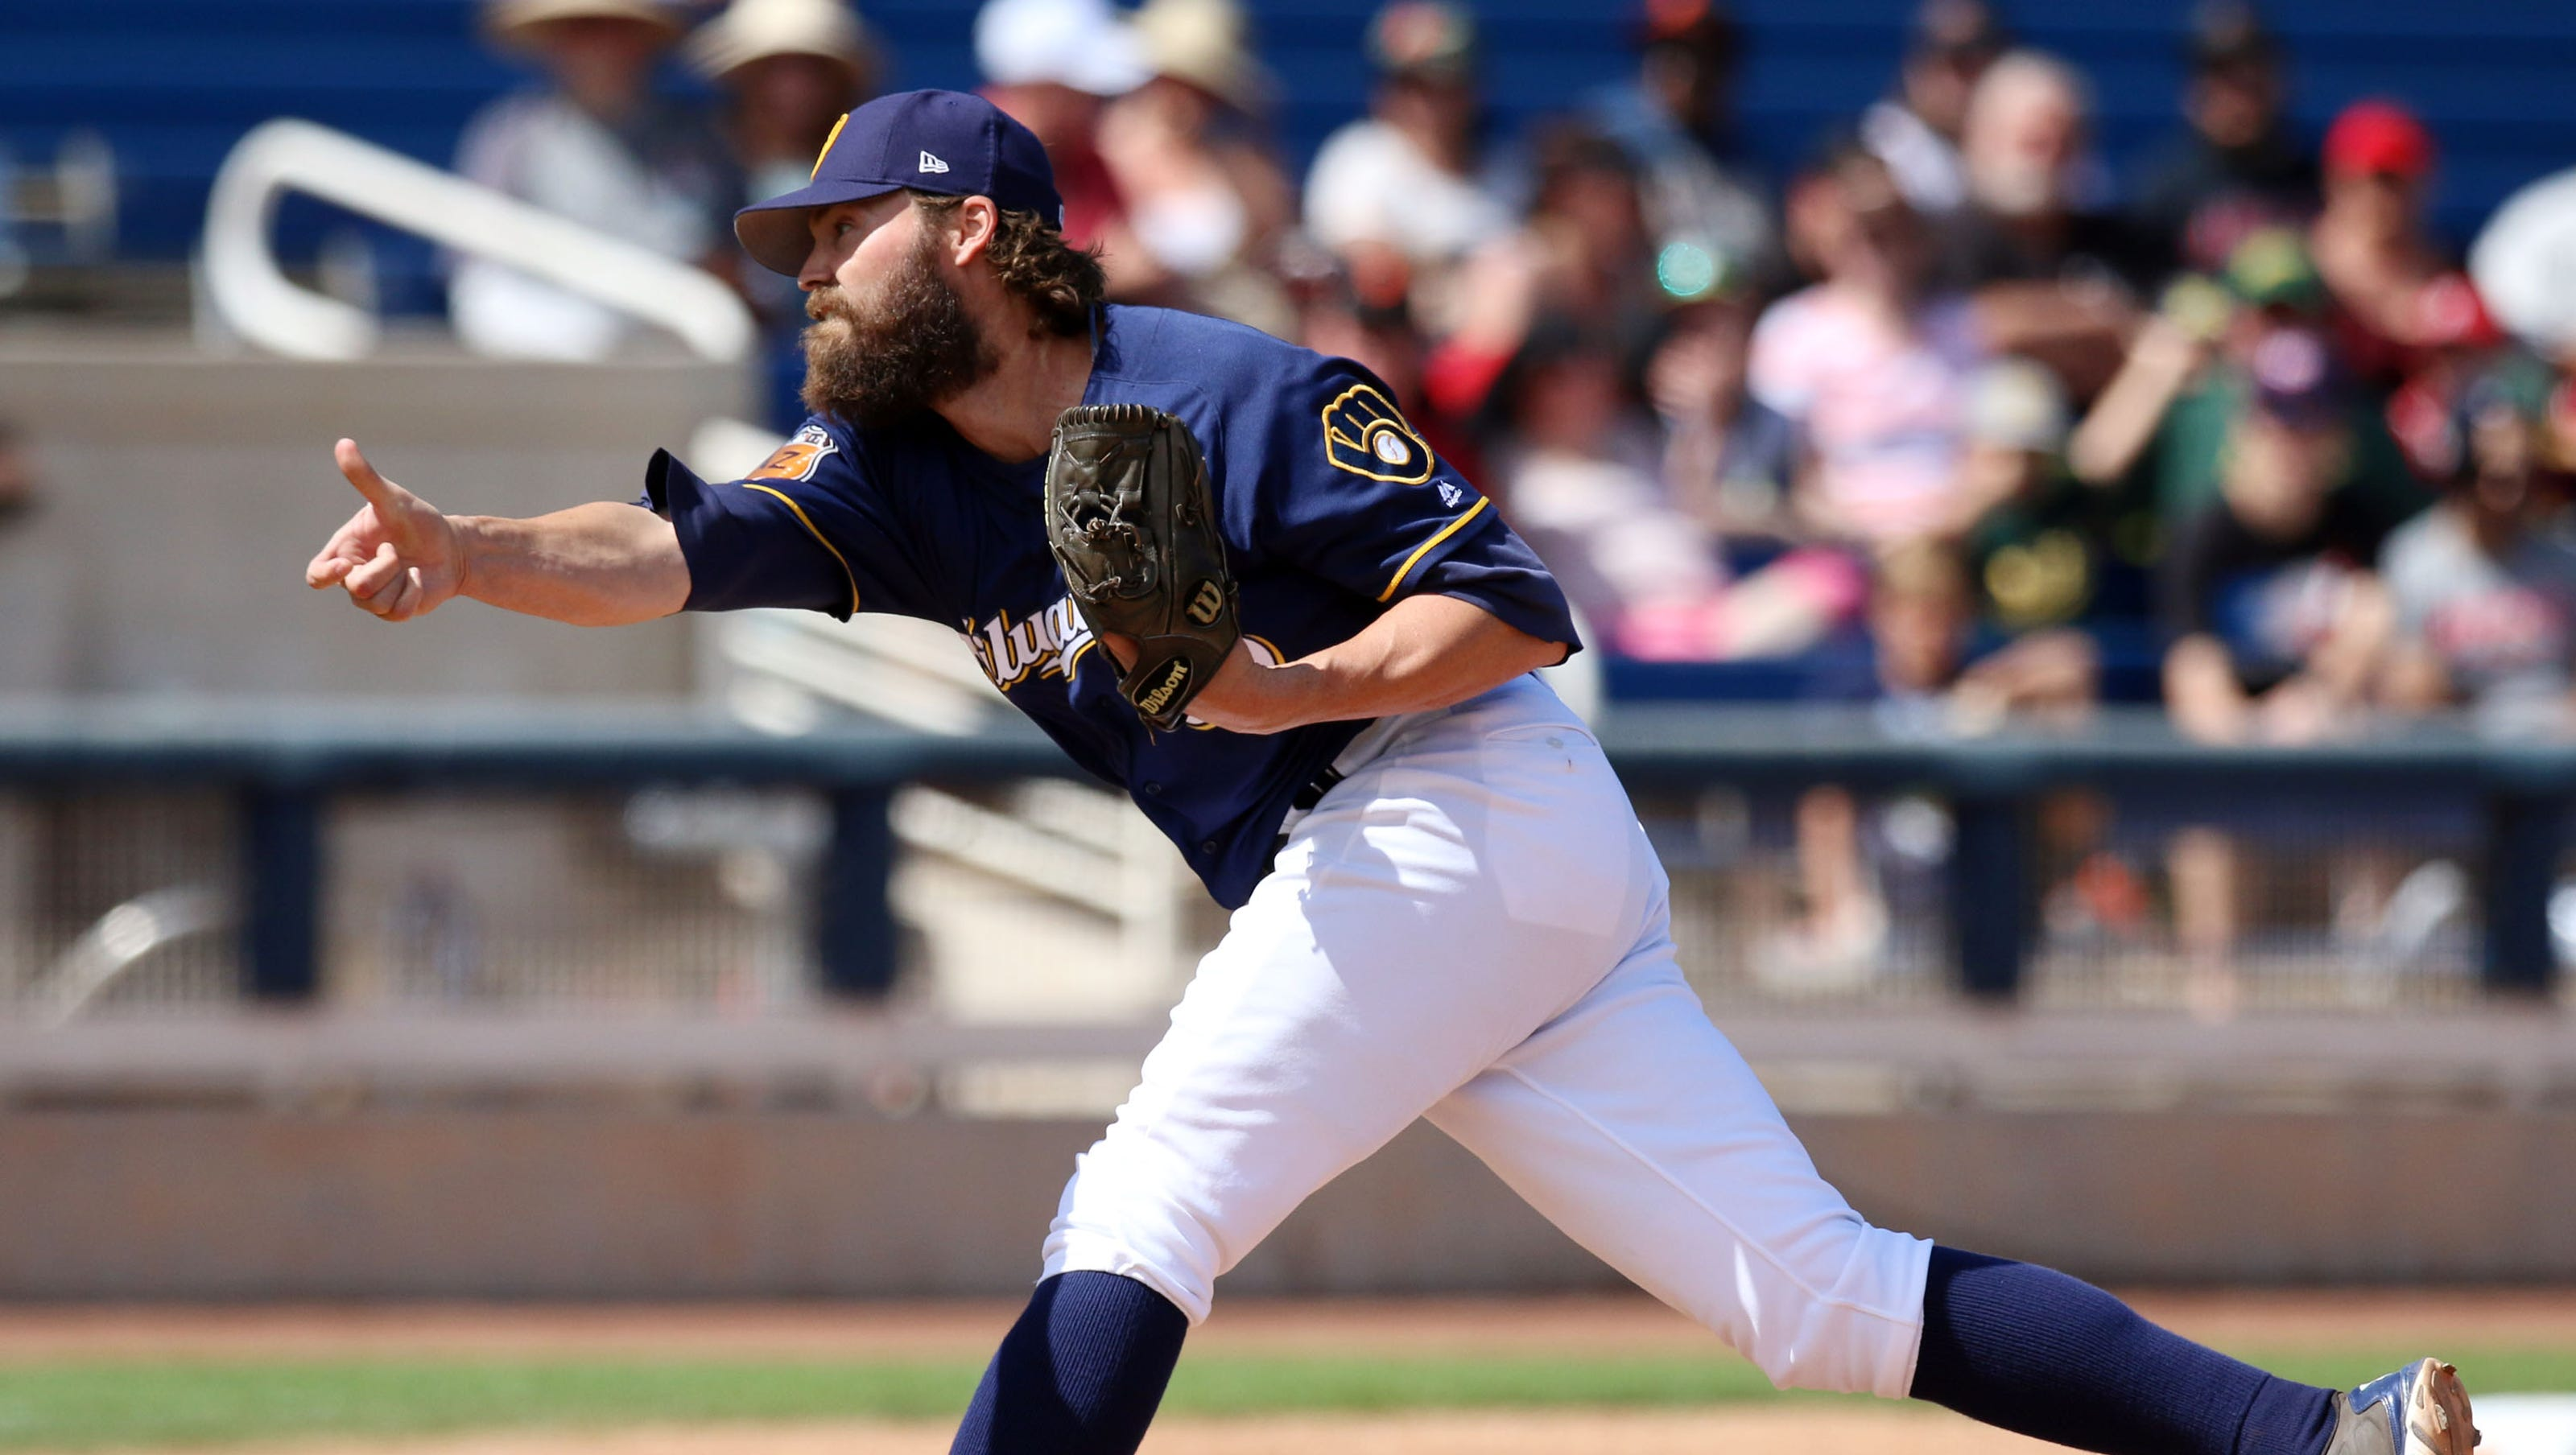 636557043842501833-mjs-brewers-spring-training